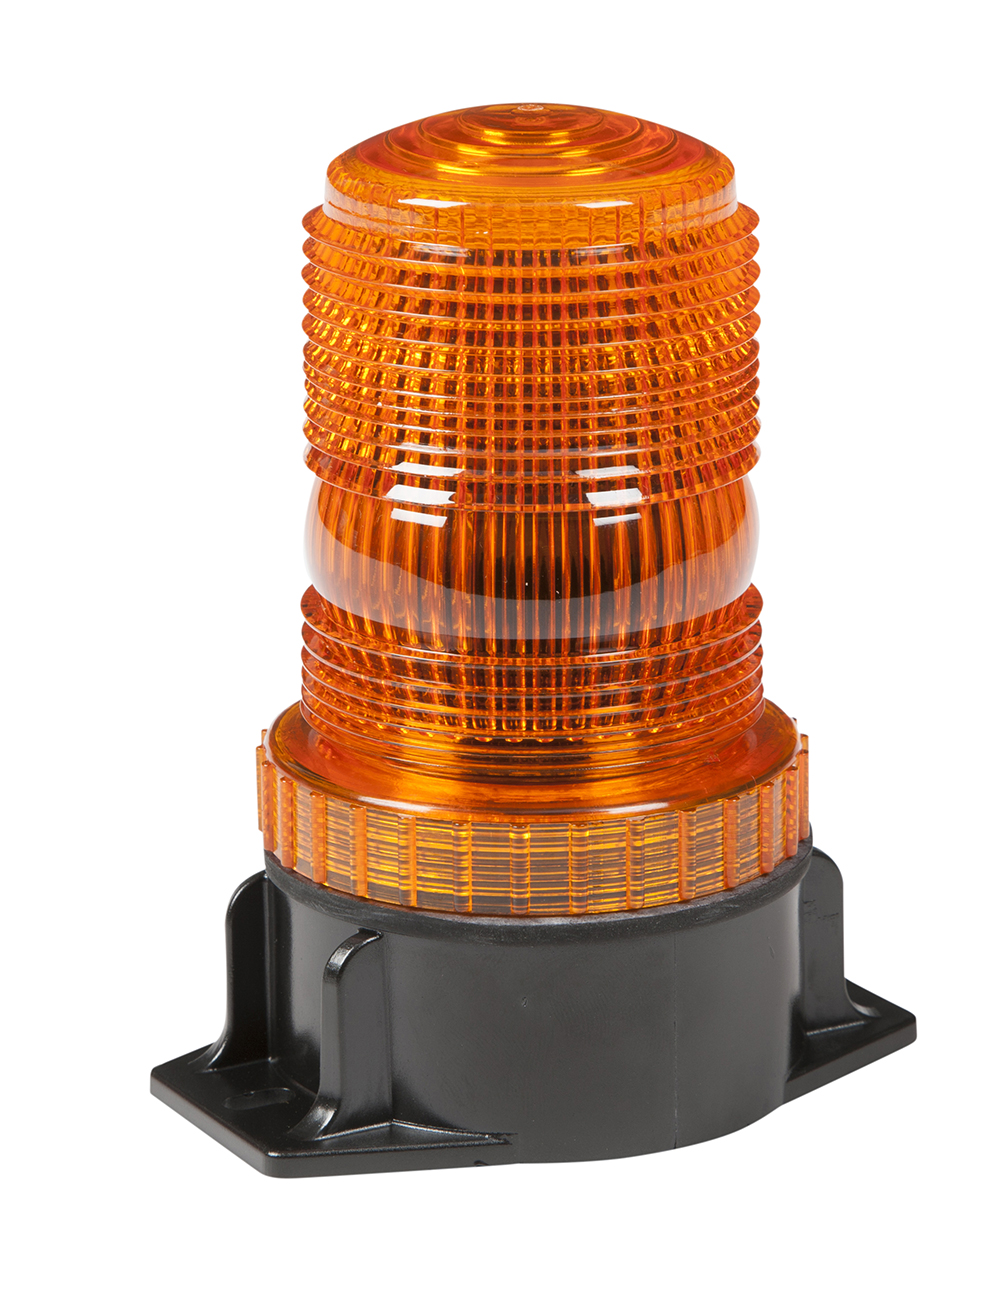 78113 – LED Material Handling Beacon, Class III, Permanent Mount, Tall Lens, Amber